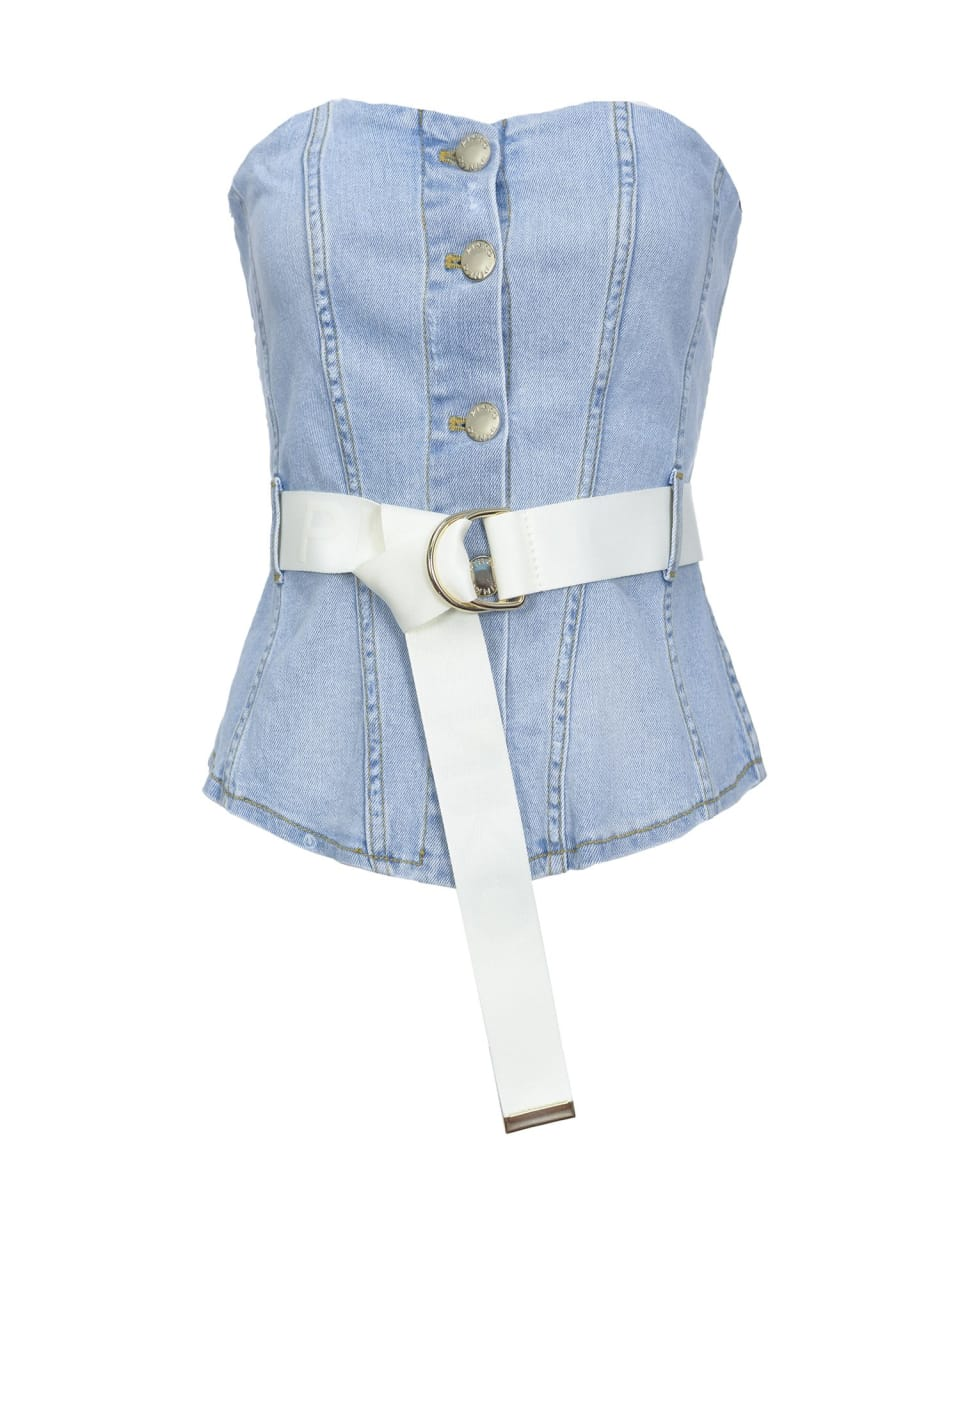 Comfort denim bustier top